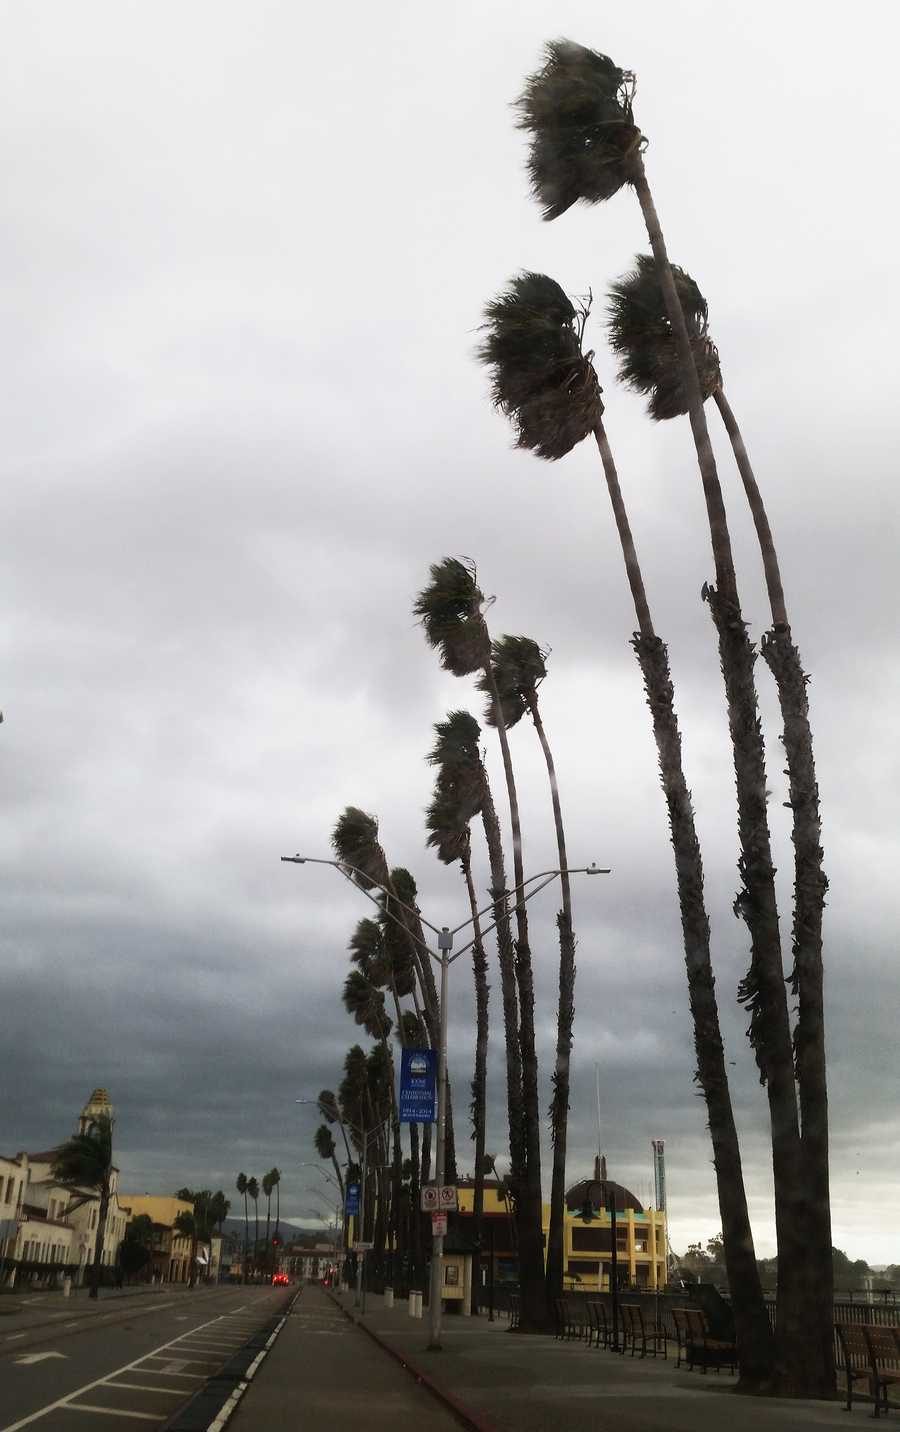 Palm trees at the Santa Cruz Beach Boardwalk were wind-battered.